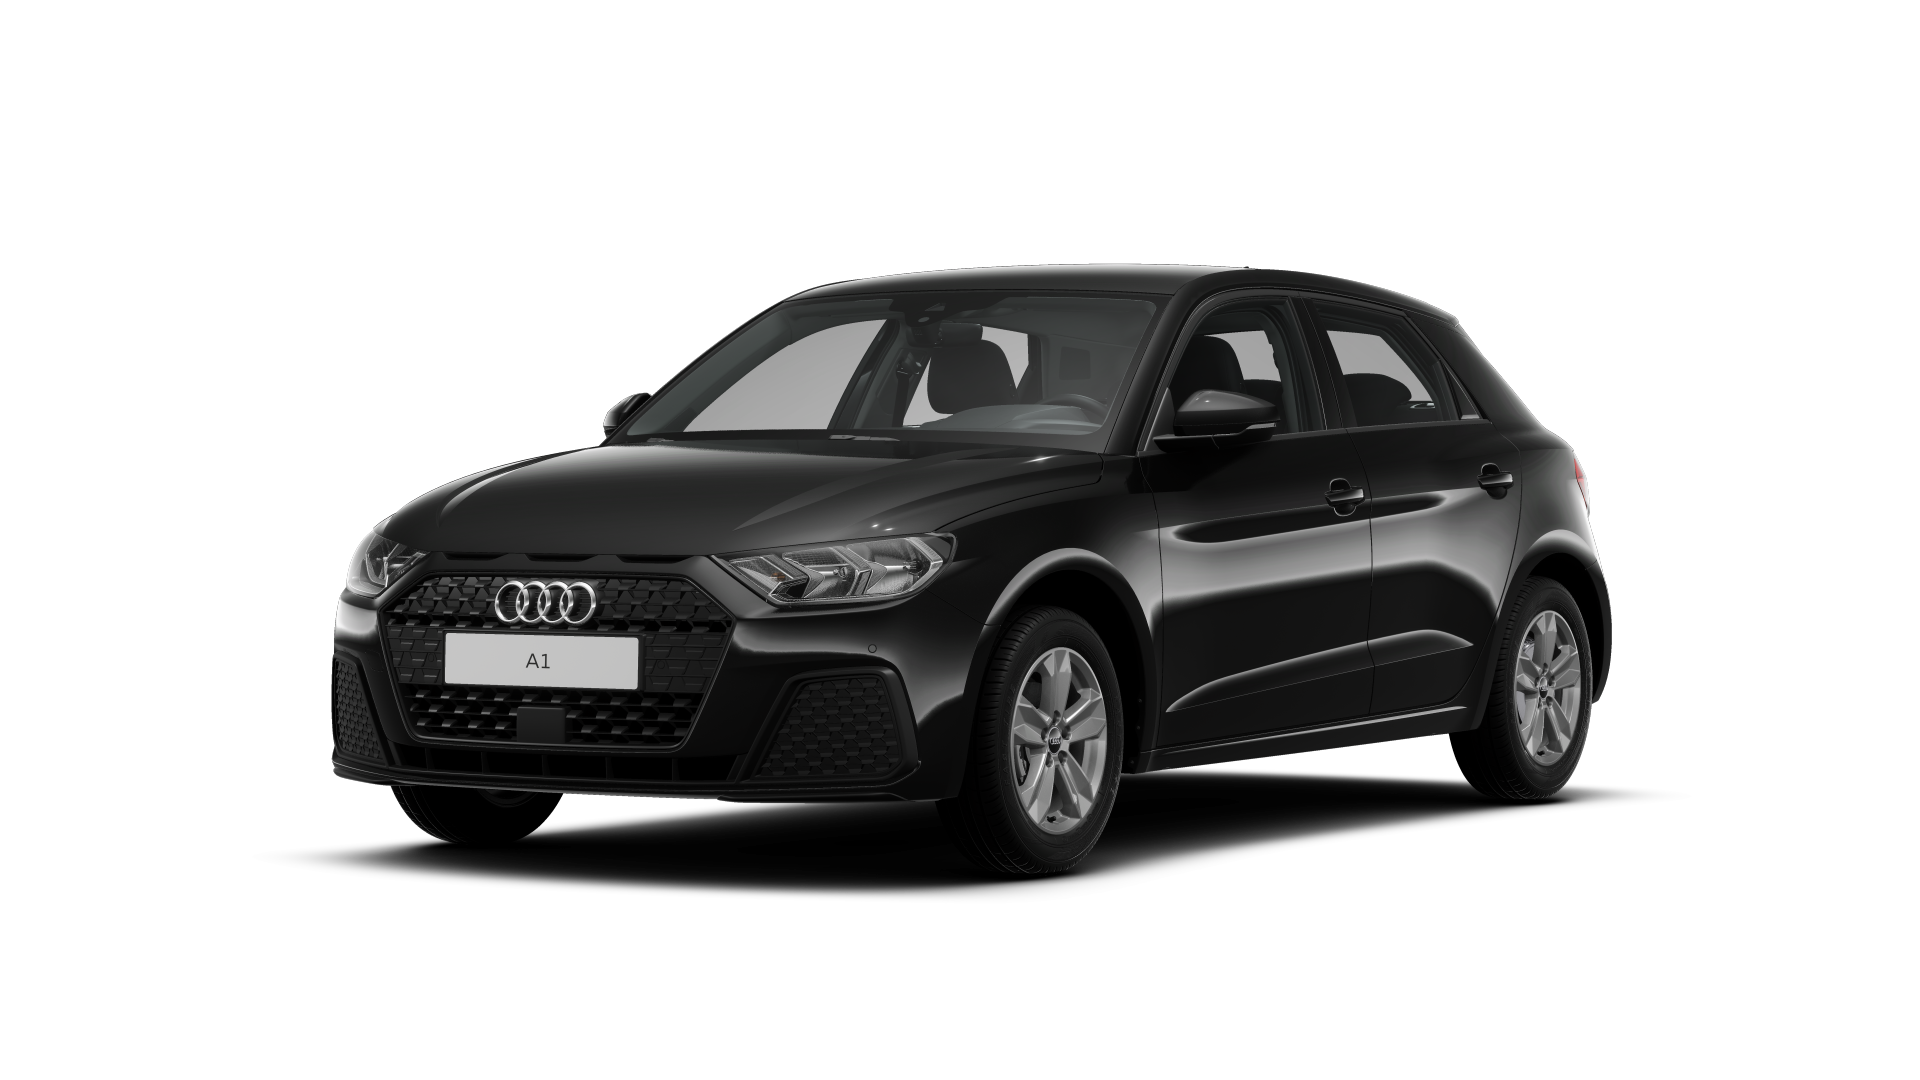 Audi A1 Sportback Business Edition 25 TFSI  70(95) kW(pk) S tronic